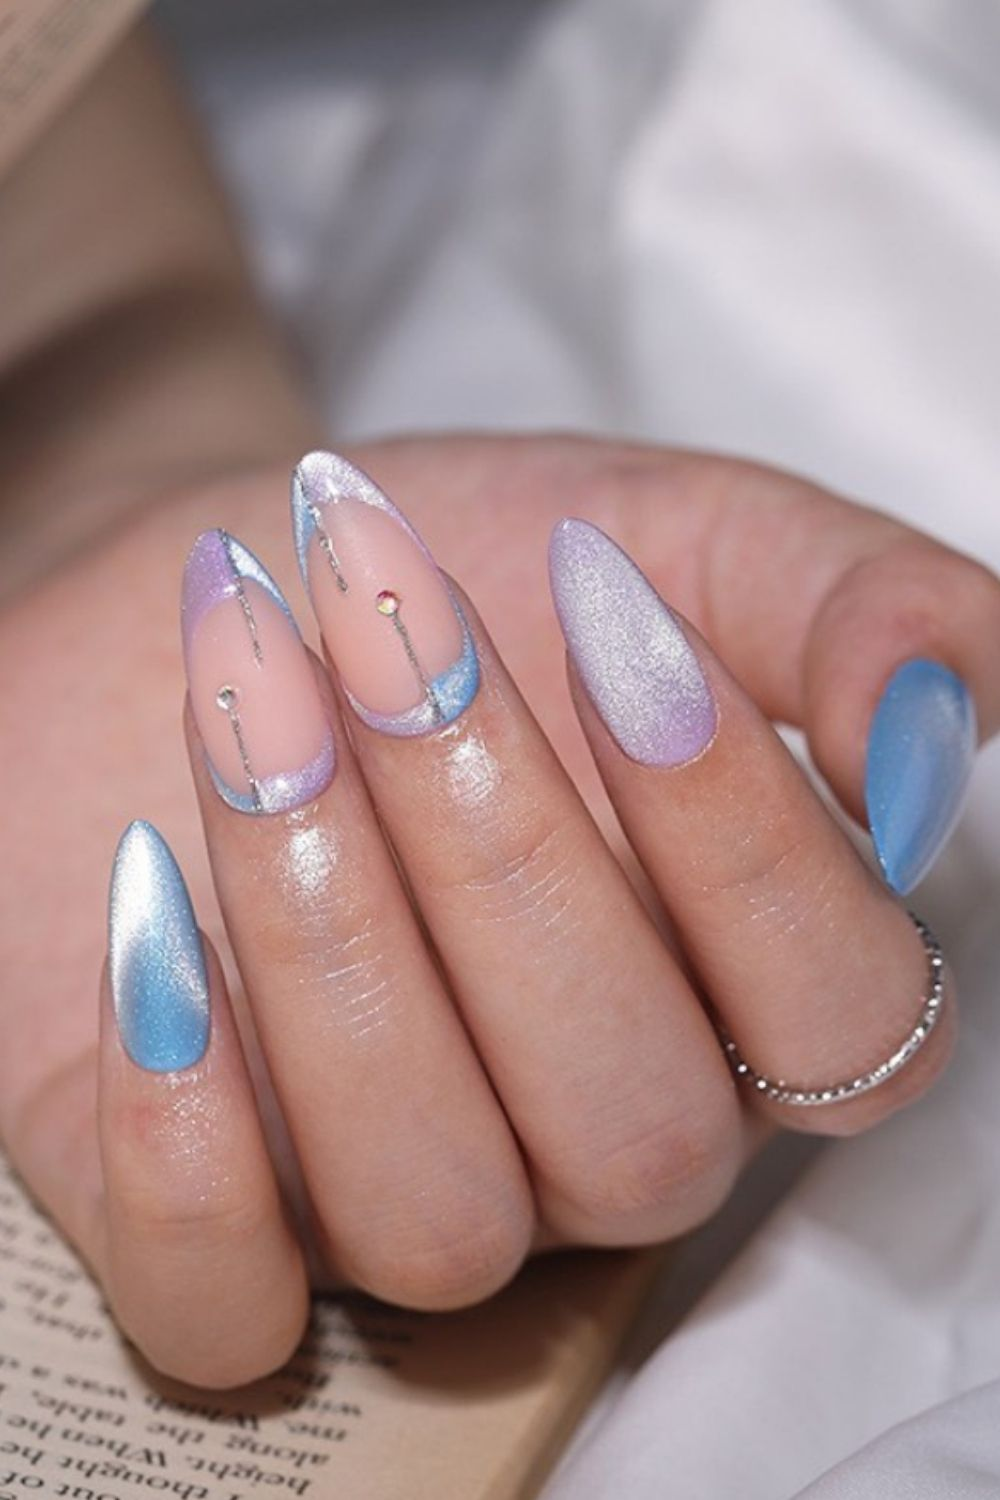 Outer space almond nails